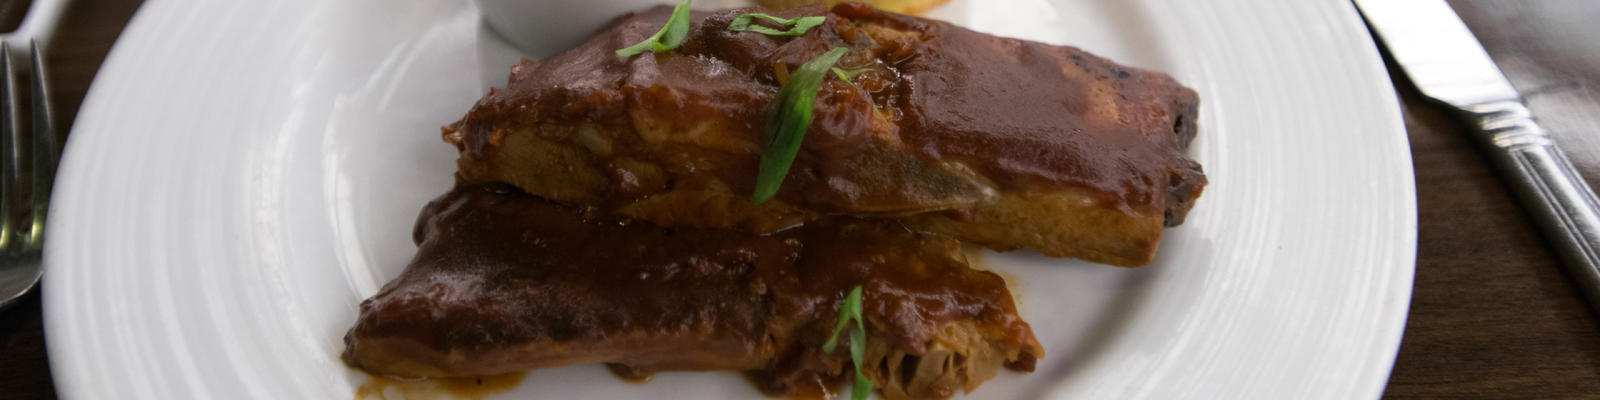 Barbecued St. Louis spare ribs at American Feast on Carnival Pride (Photo: Cruise Critic)